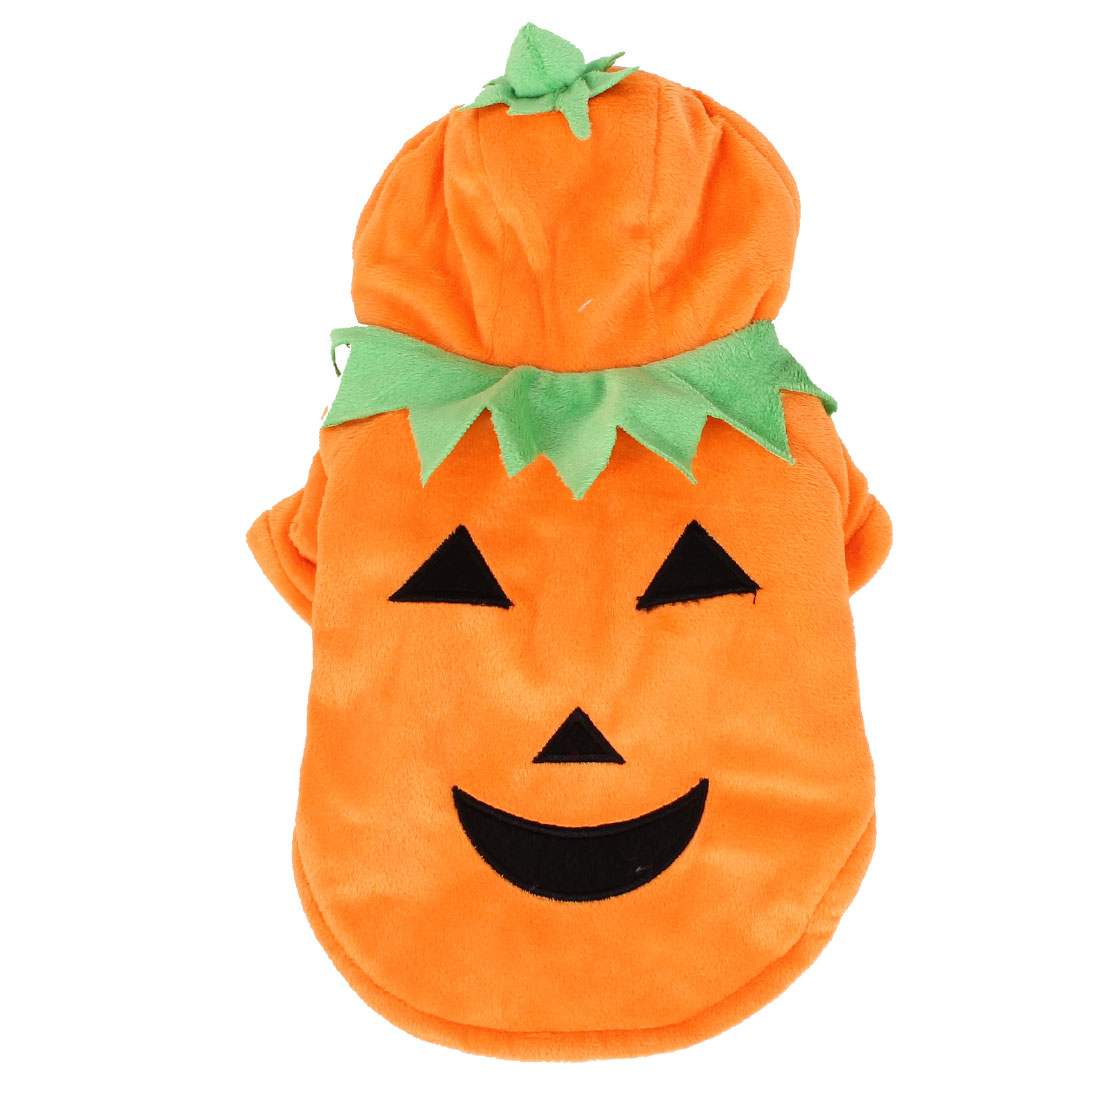 Halloween Pumpkin Shape Single Breasted Hoodie Pet Dog Doggy Clothes Apparel Orange Size L